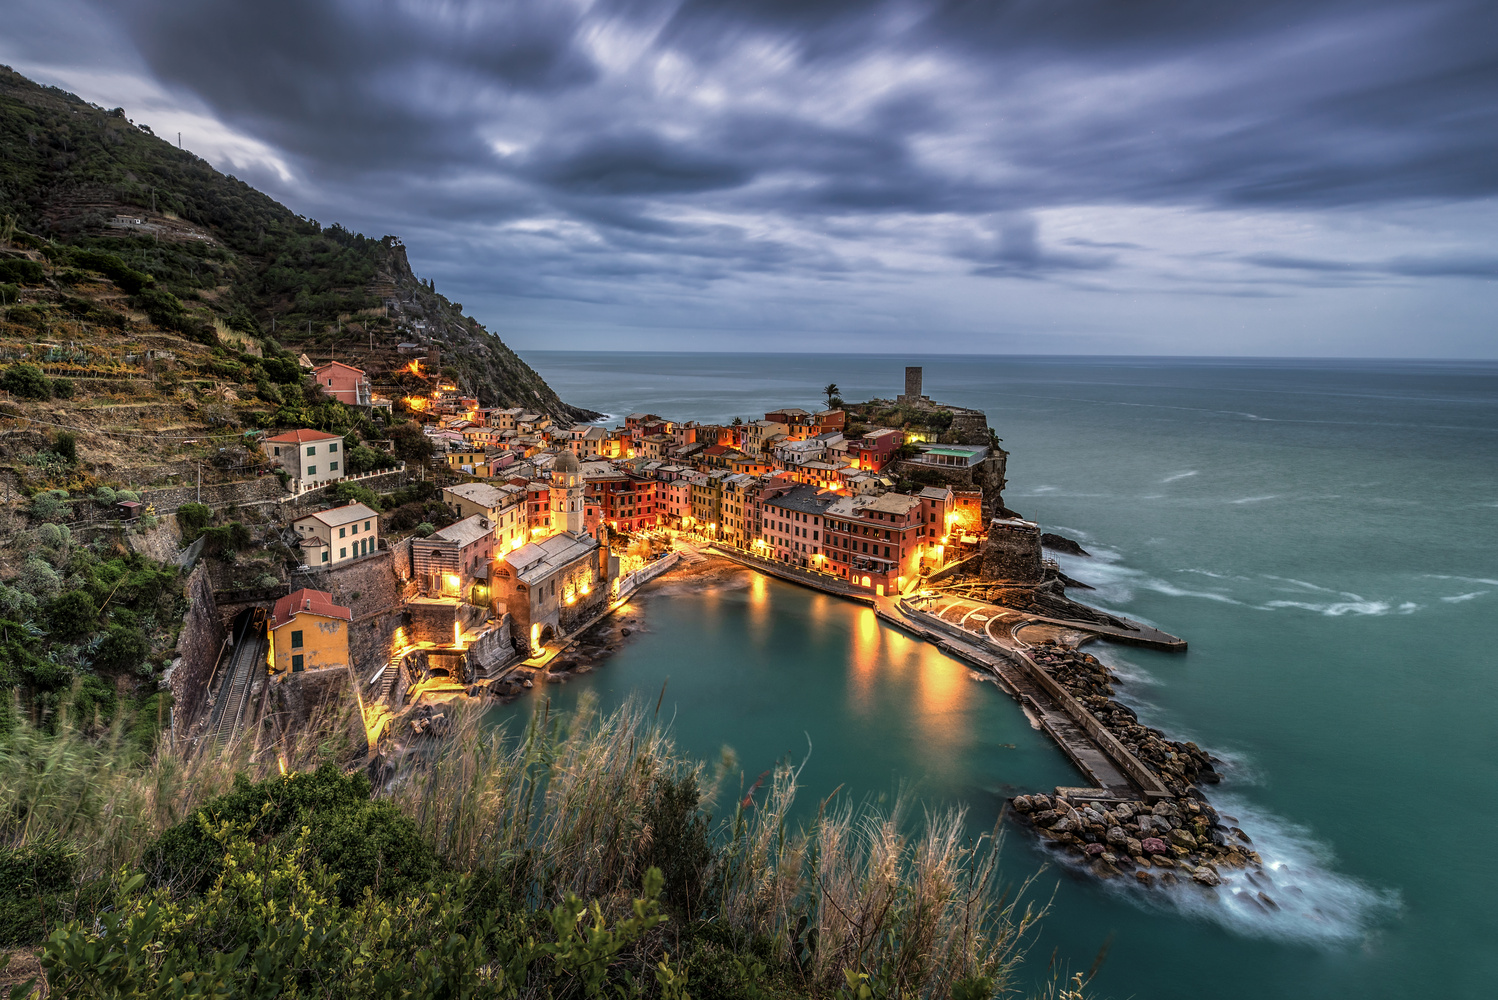 Vernazza by Andreas Fink